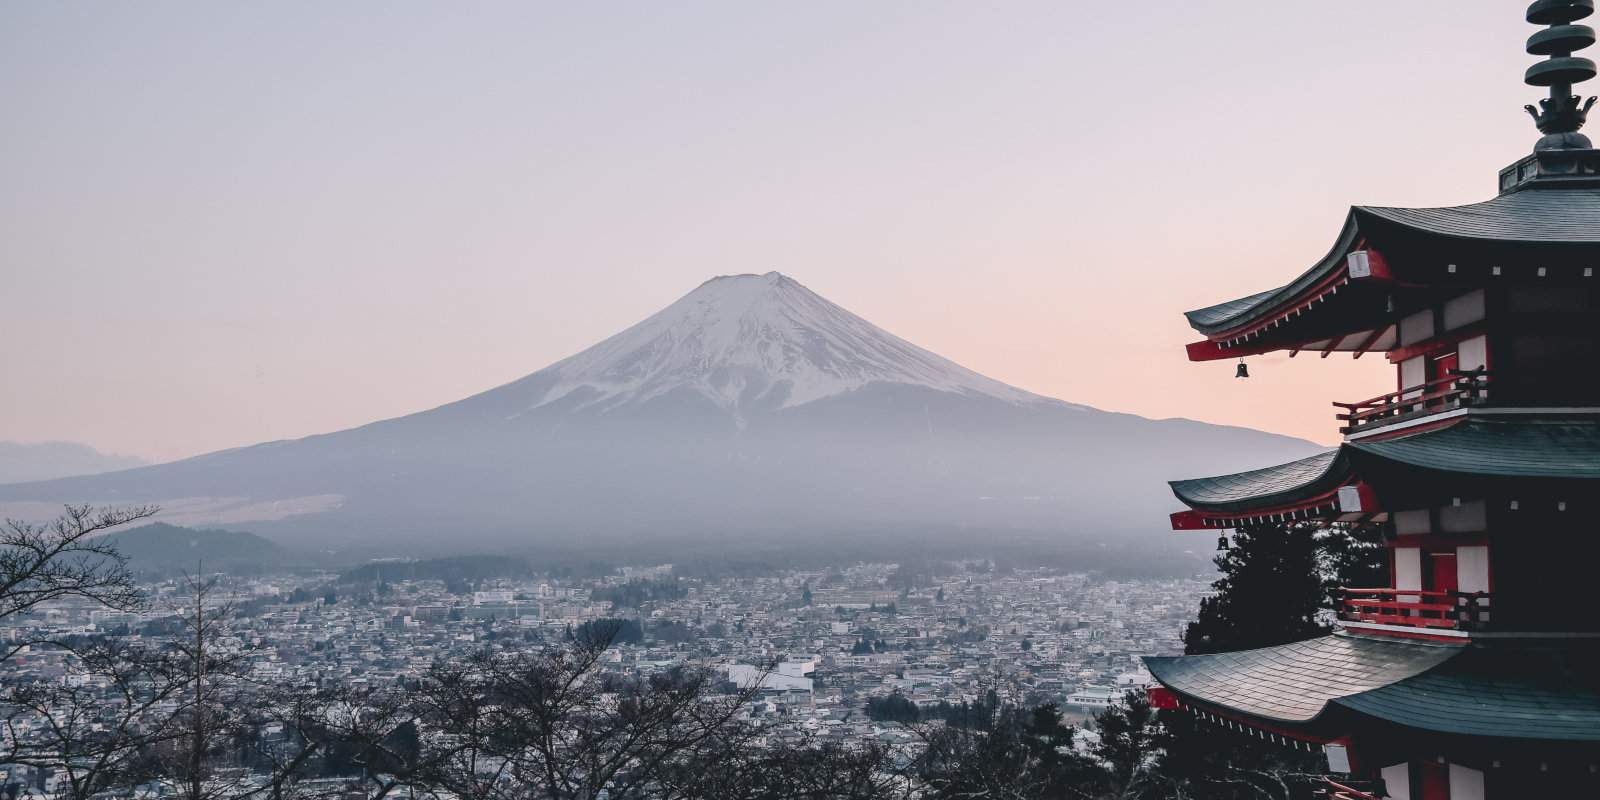 One of the highlights of the China, Taiwan and Japan gay cruise will definitely be seeing Mount Fuji in Japan!